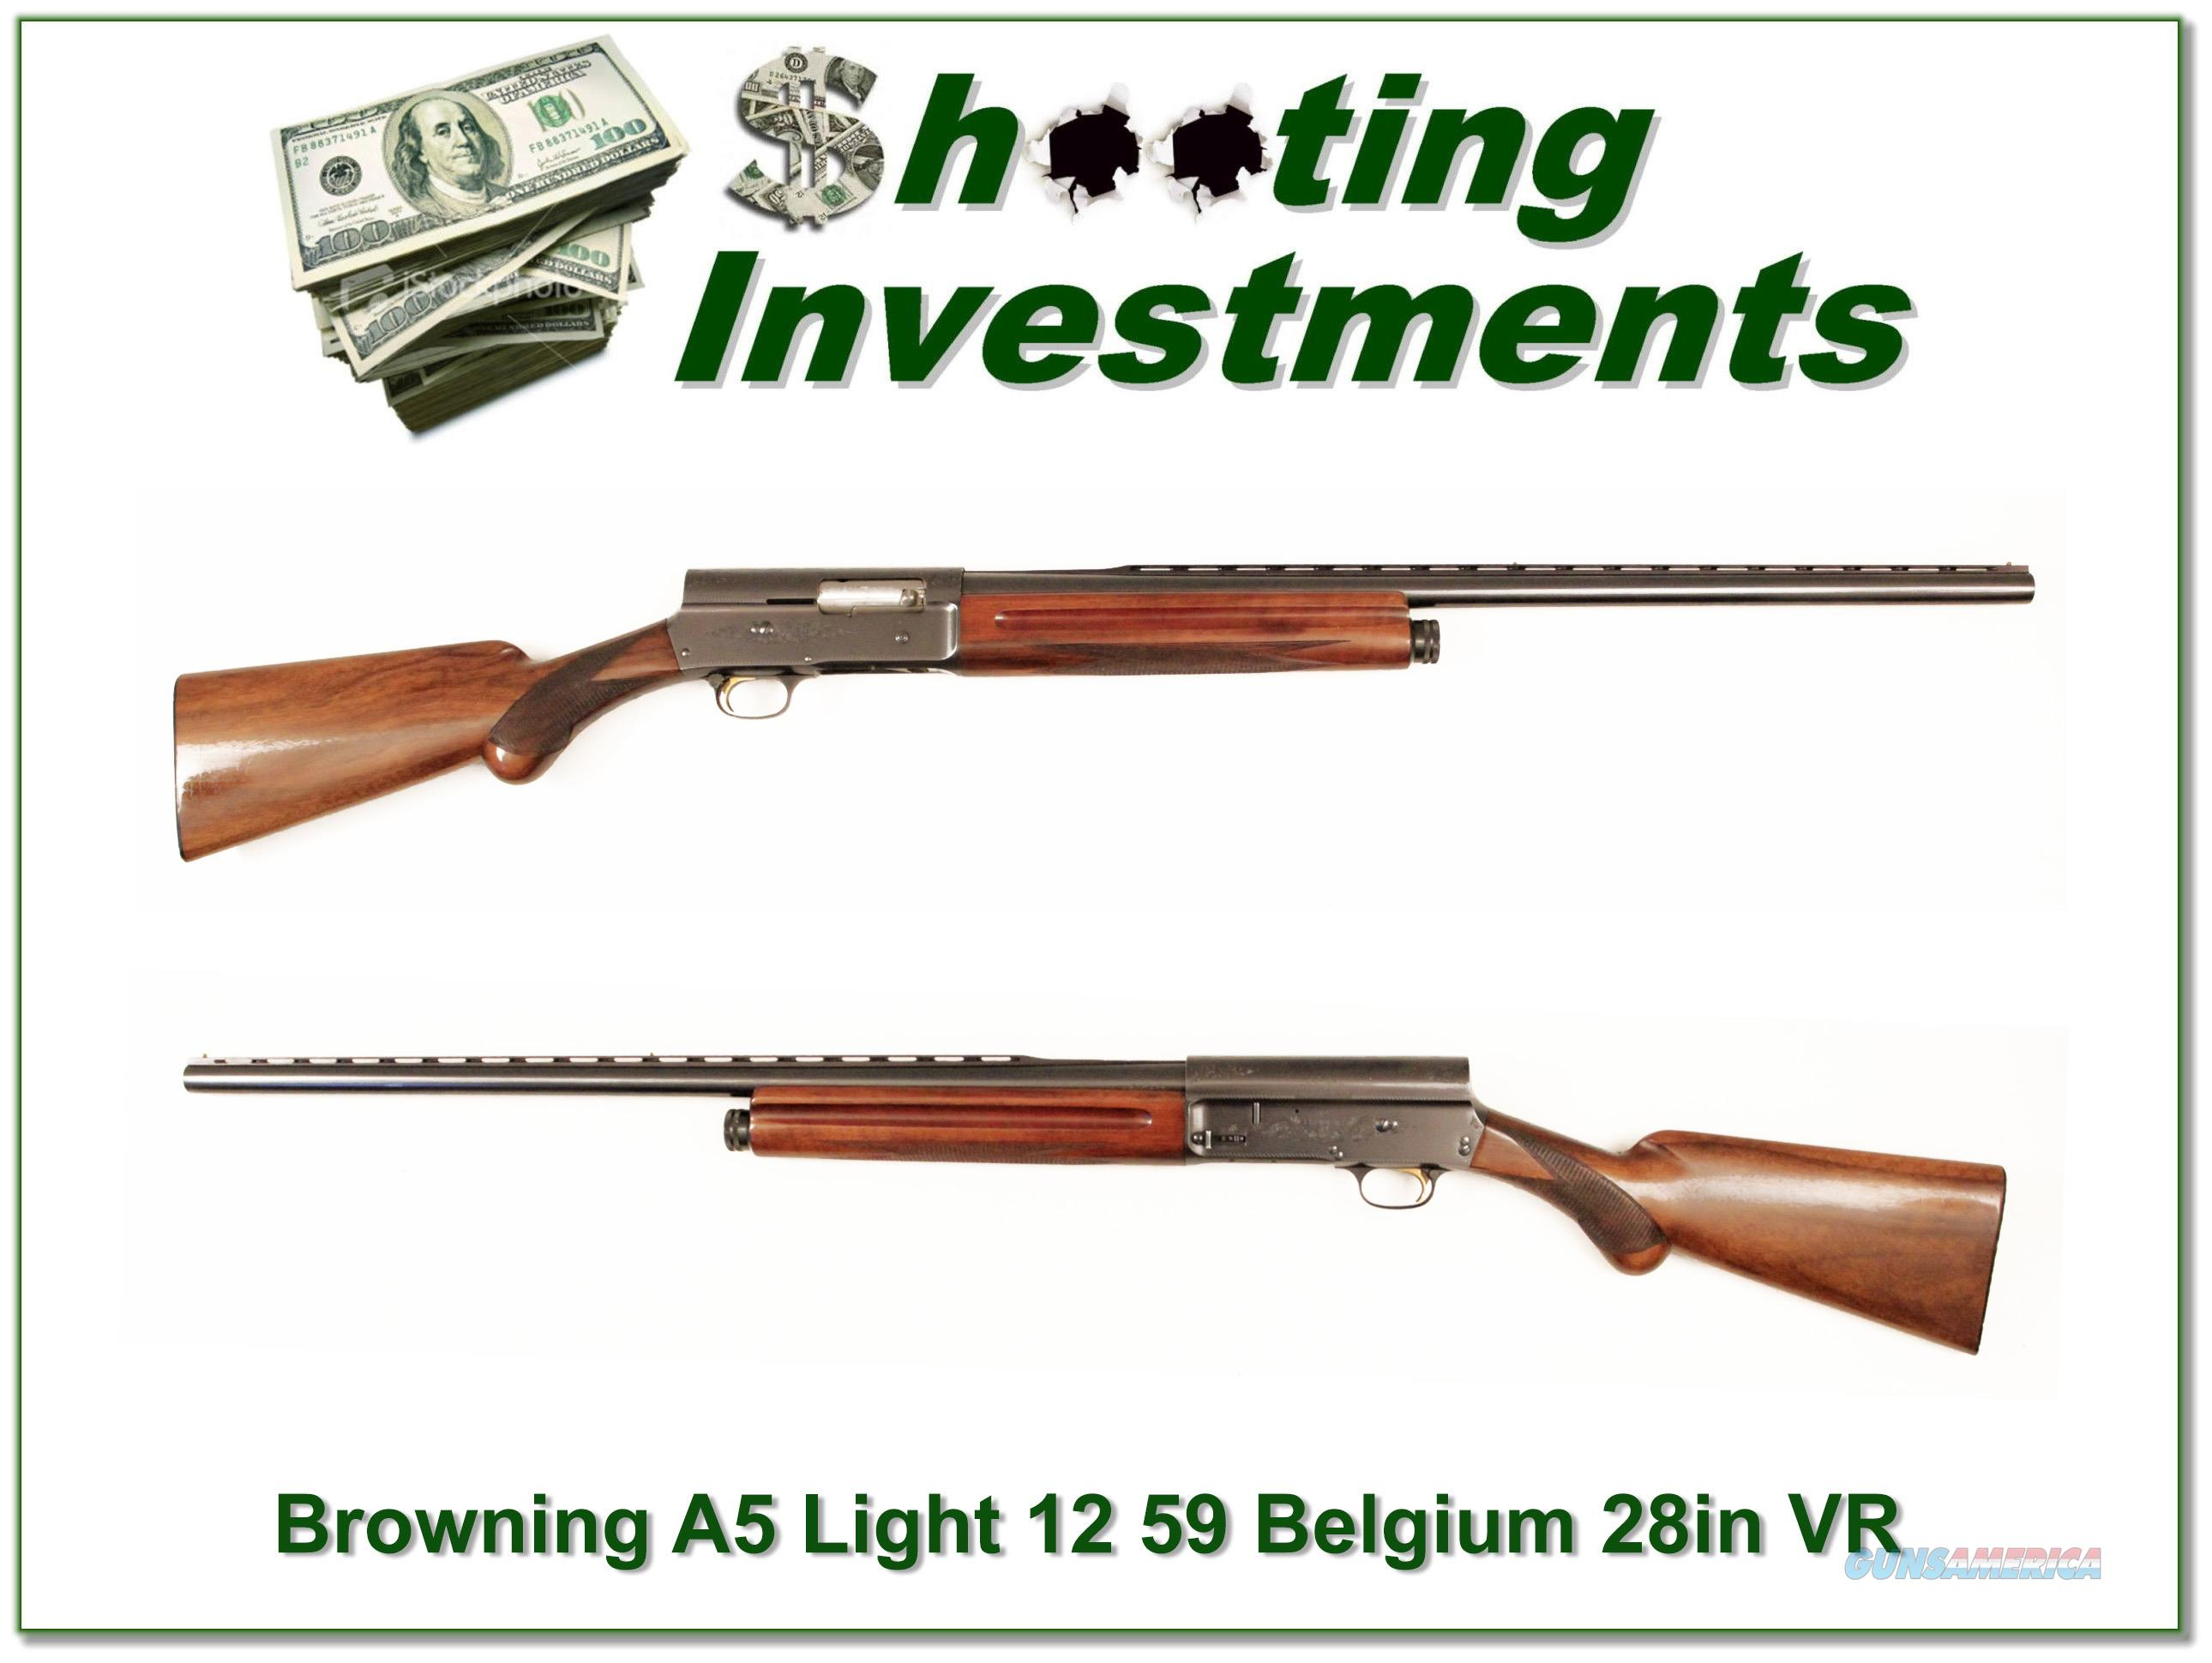 Browning A5 Light 12 59 Belgium 28in VR  Guns > Shotguns > Browning Shotguns > Autoloaders > Hunting